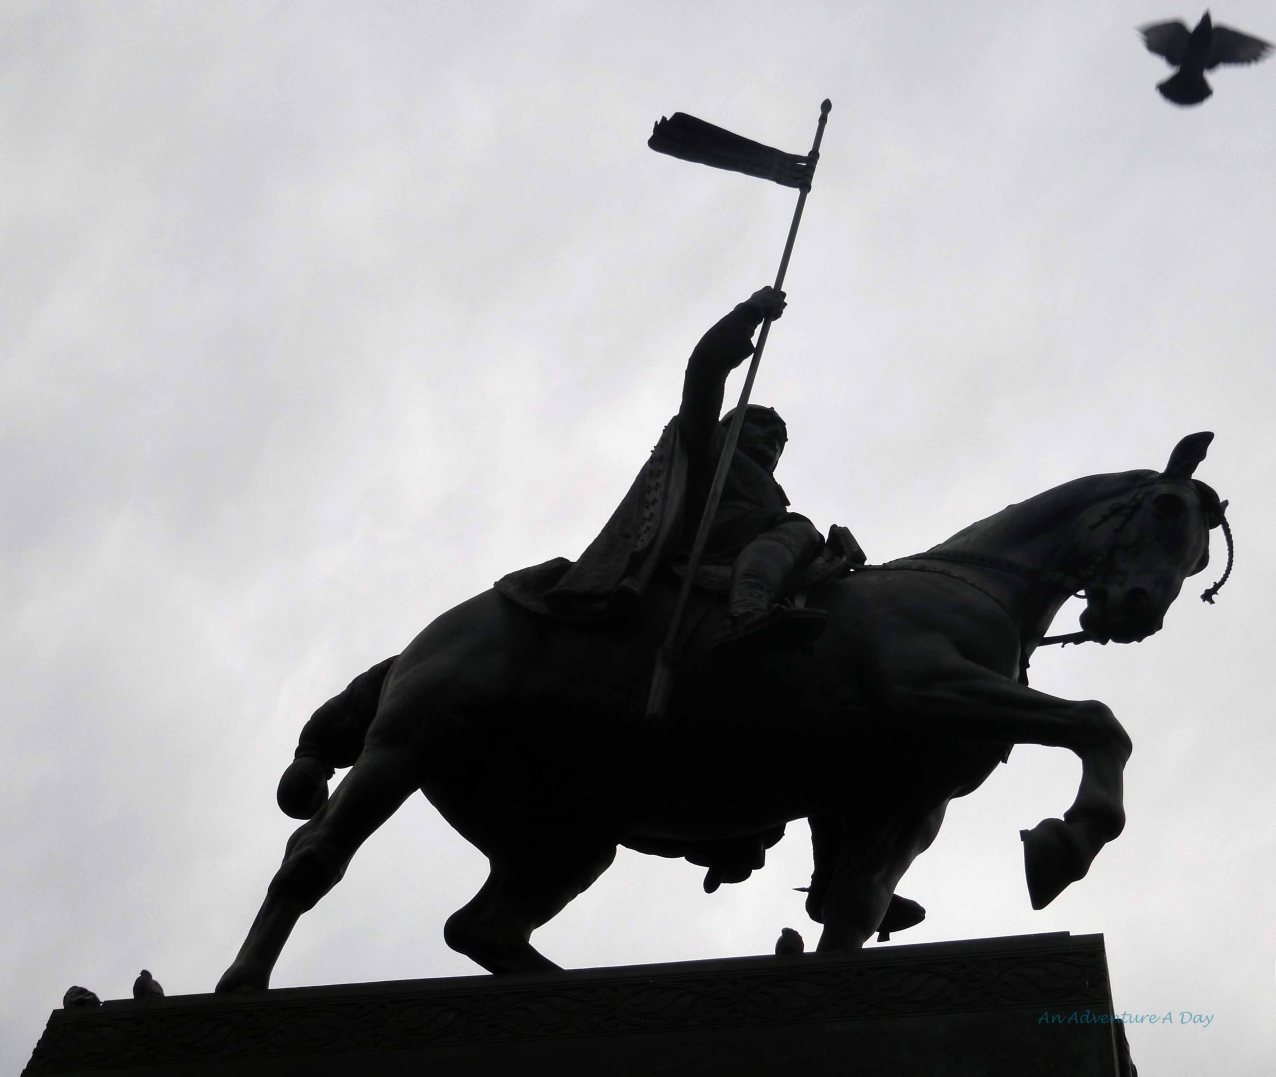 The statue of Wenceslas watches over the square, sight of many significant moments in history